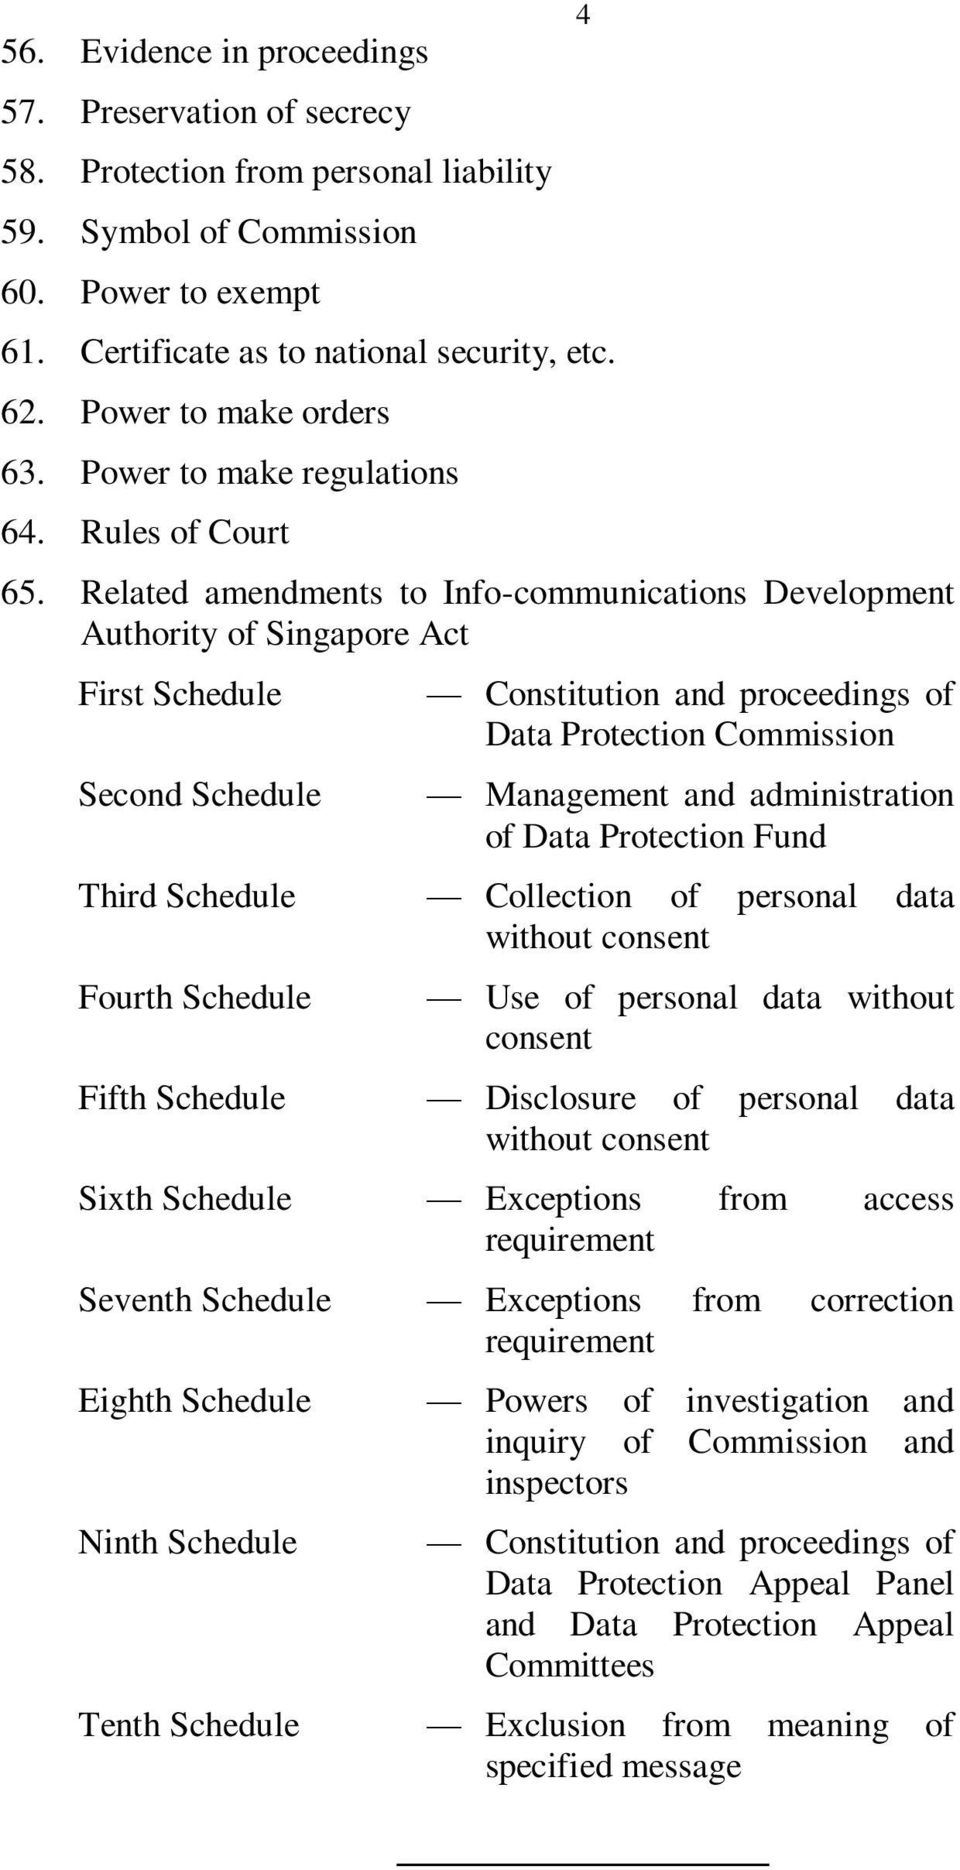 Related amendments to Info-communications Development Authority of Singapore Act First Schedule Second Schedule 4 Constitution and proceedings of Data Protection Commission Management and